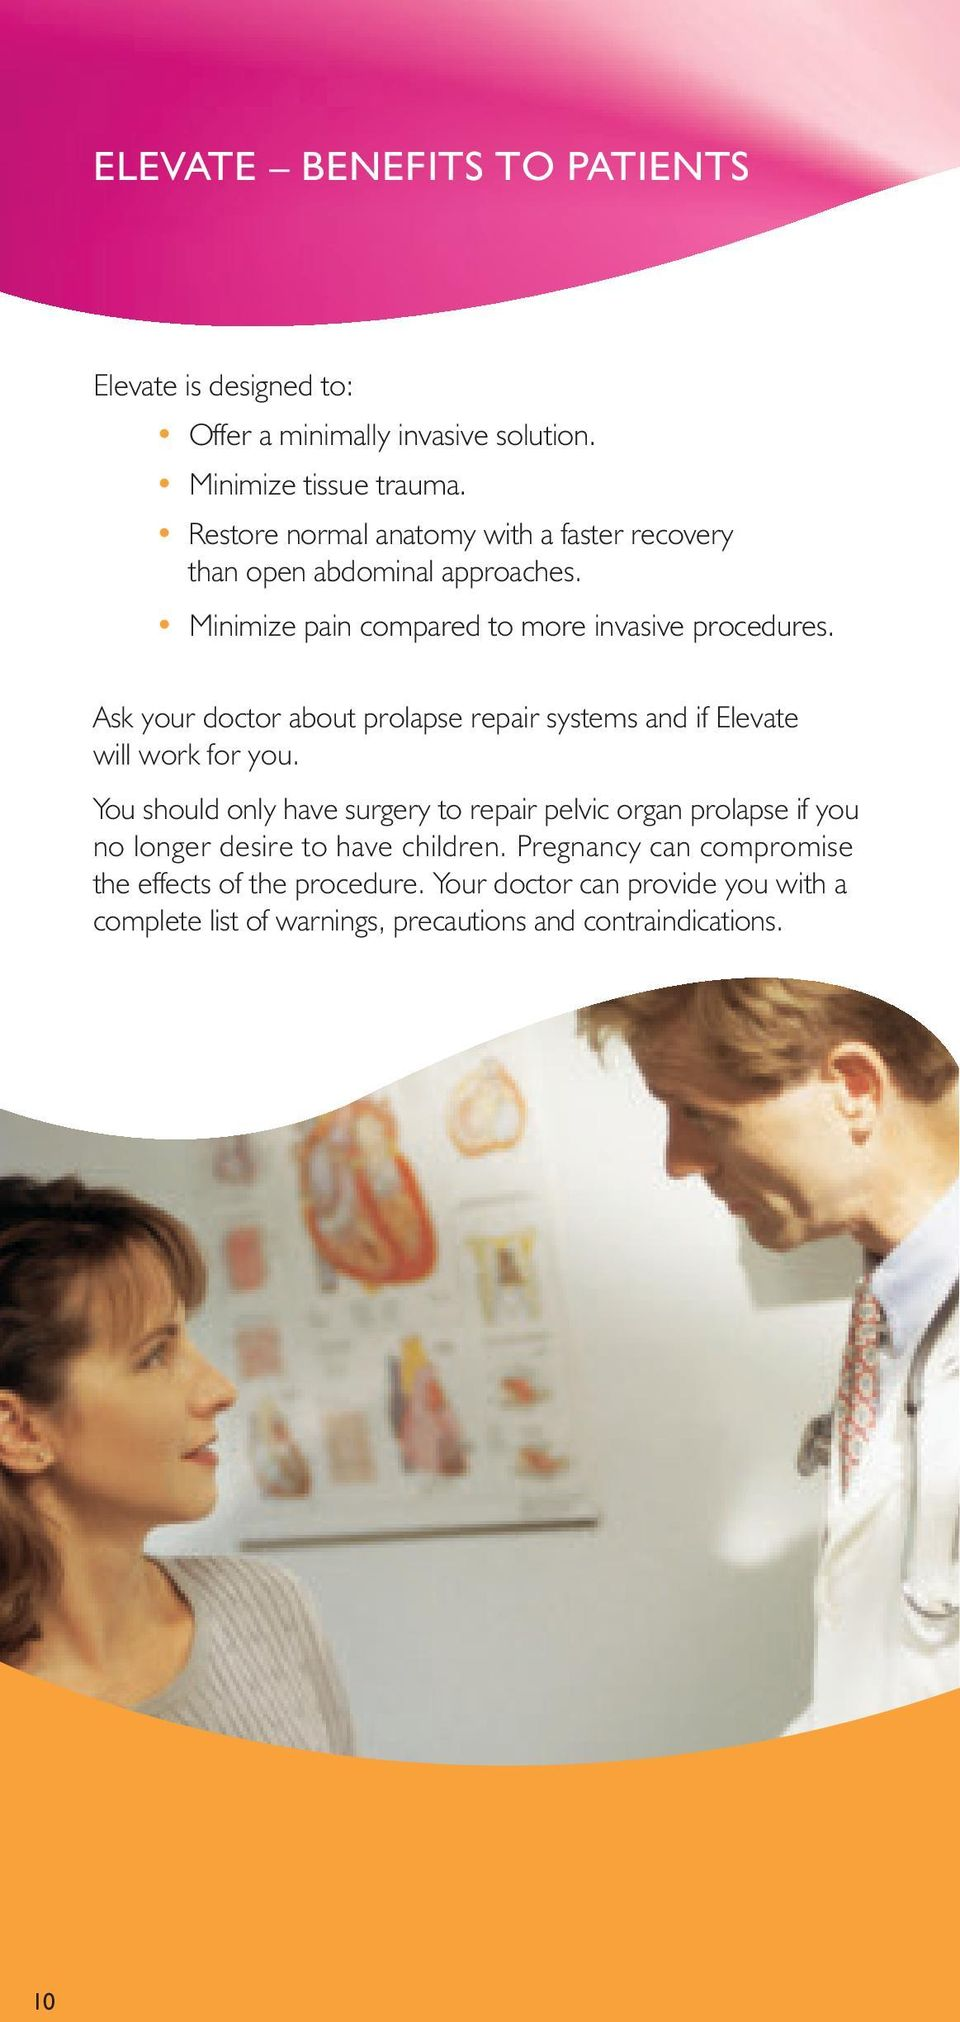 Ask your doctor about prolapse repair systems and if Elevate will work for you.